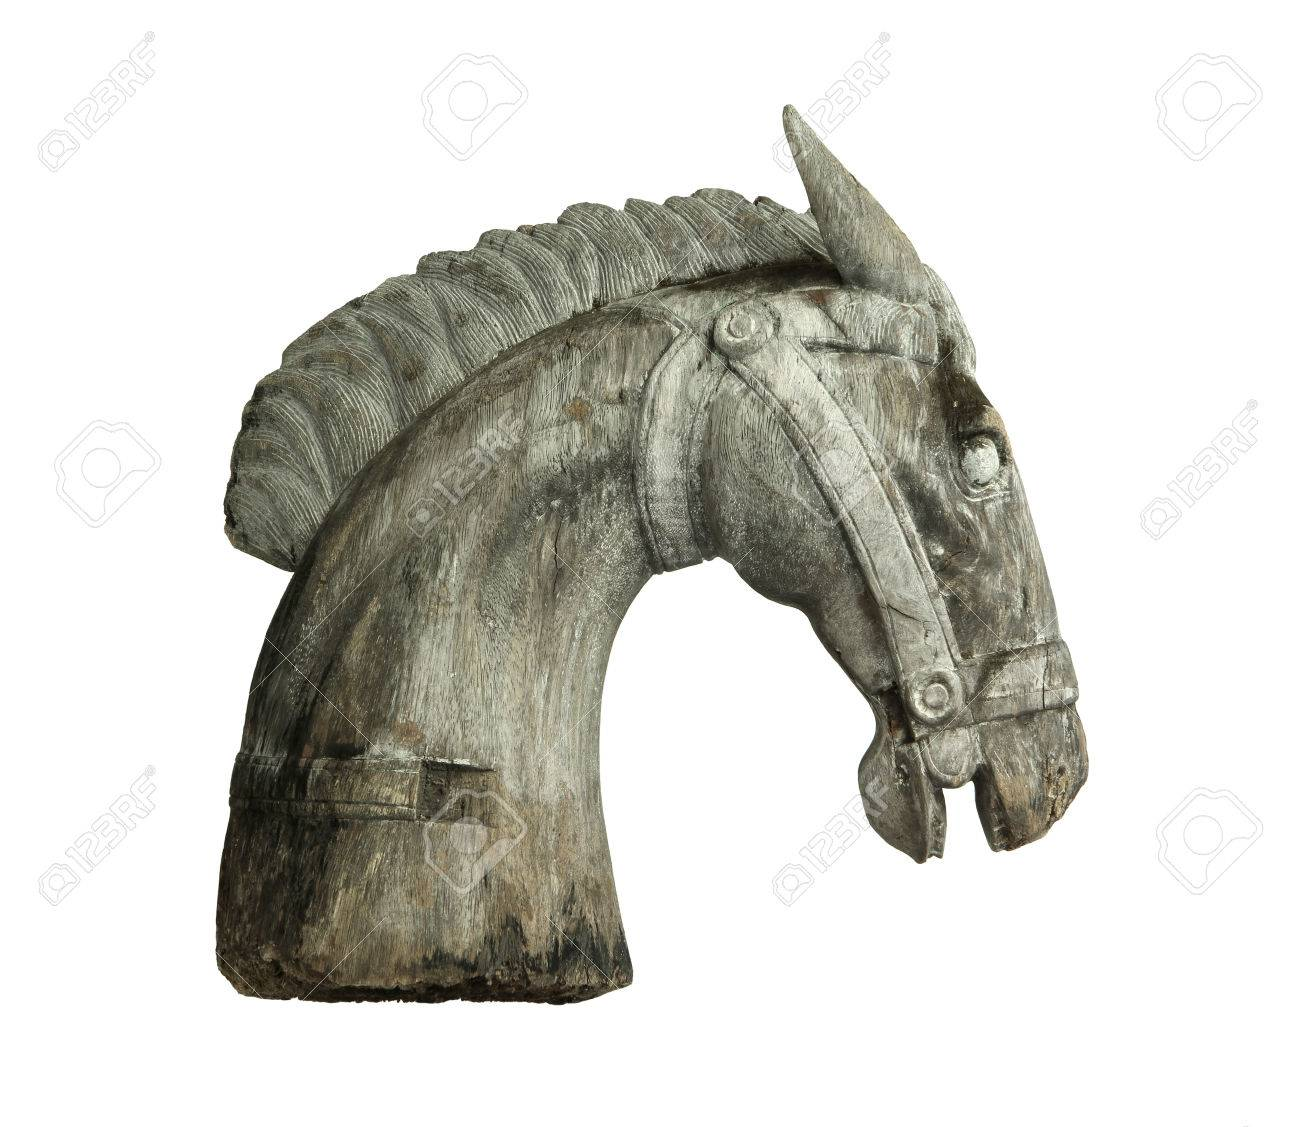 Wooden Horse Head Isolated On White Background Stock Photo Picture And Royalty Free Image Image 62434897